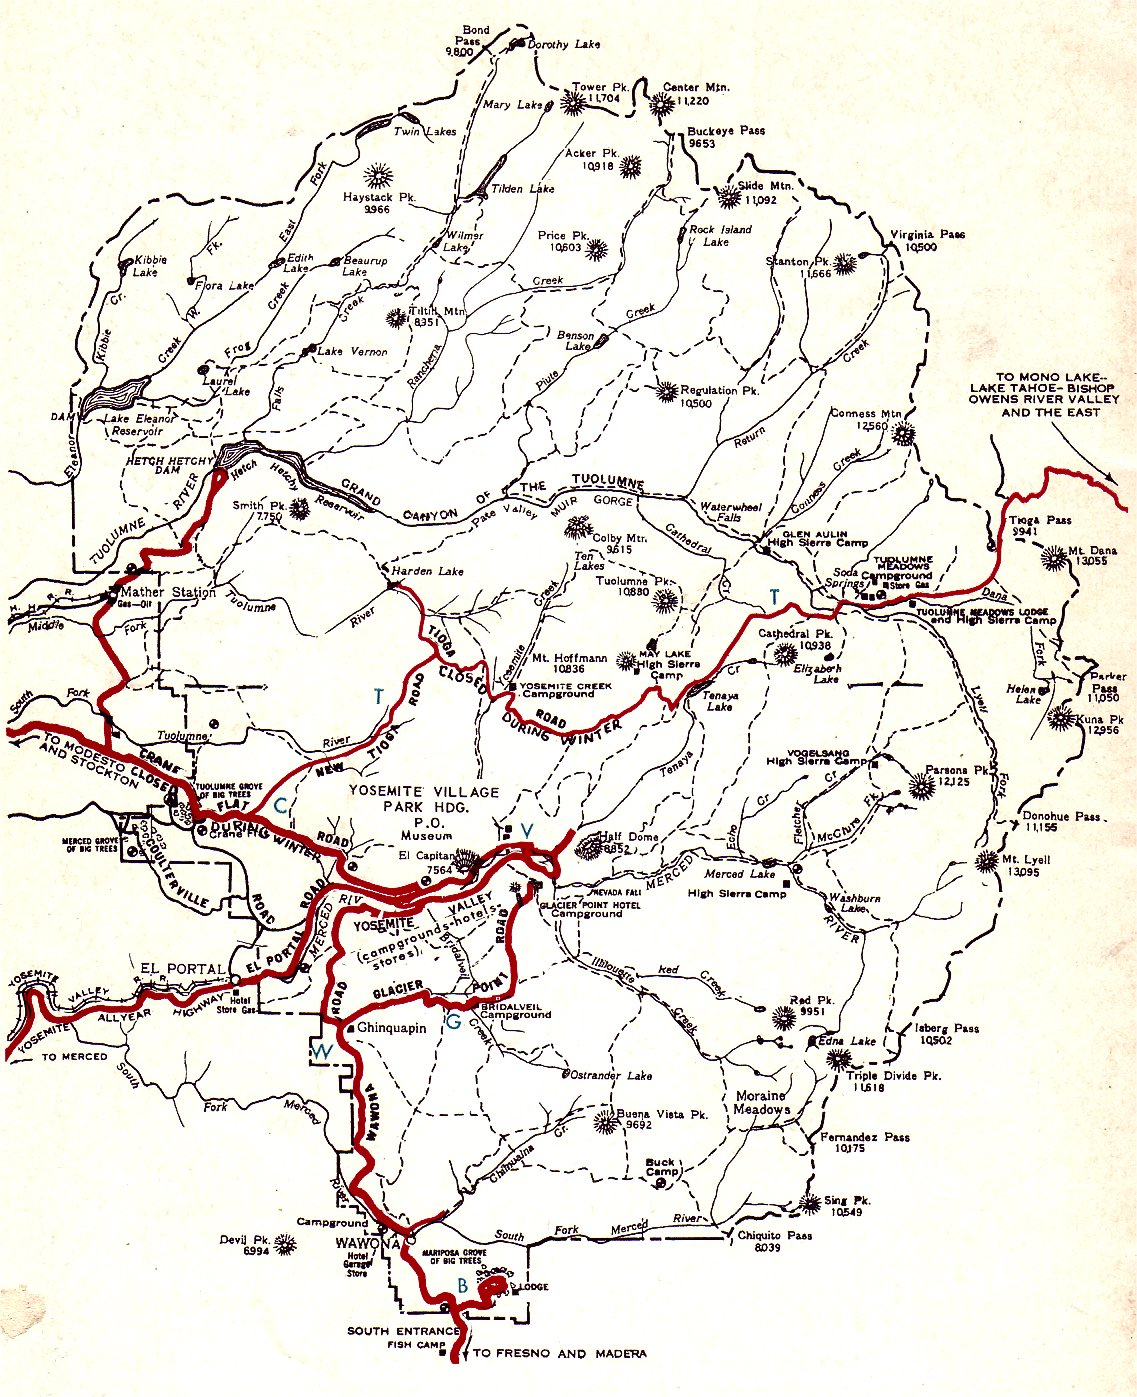 Yosemite National Park Map Of Routes Covered By This Self Guiding Auto Tour